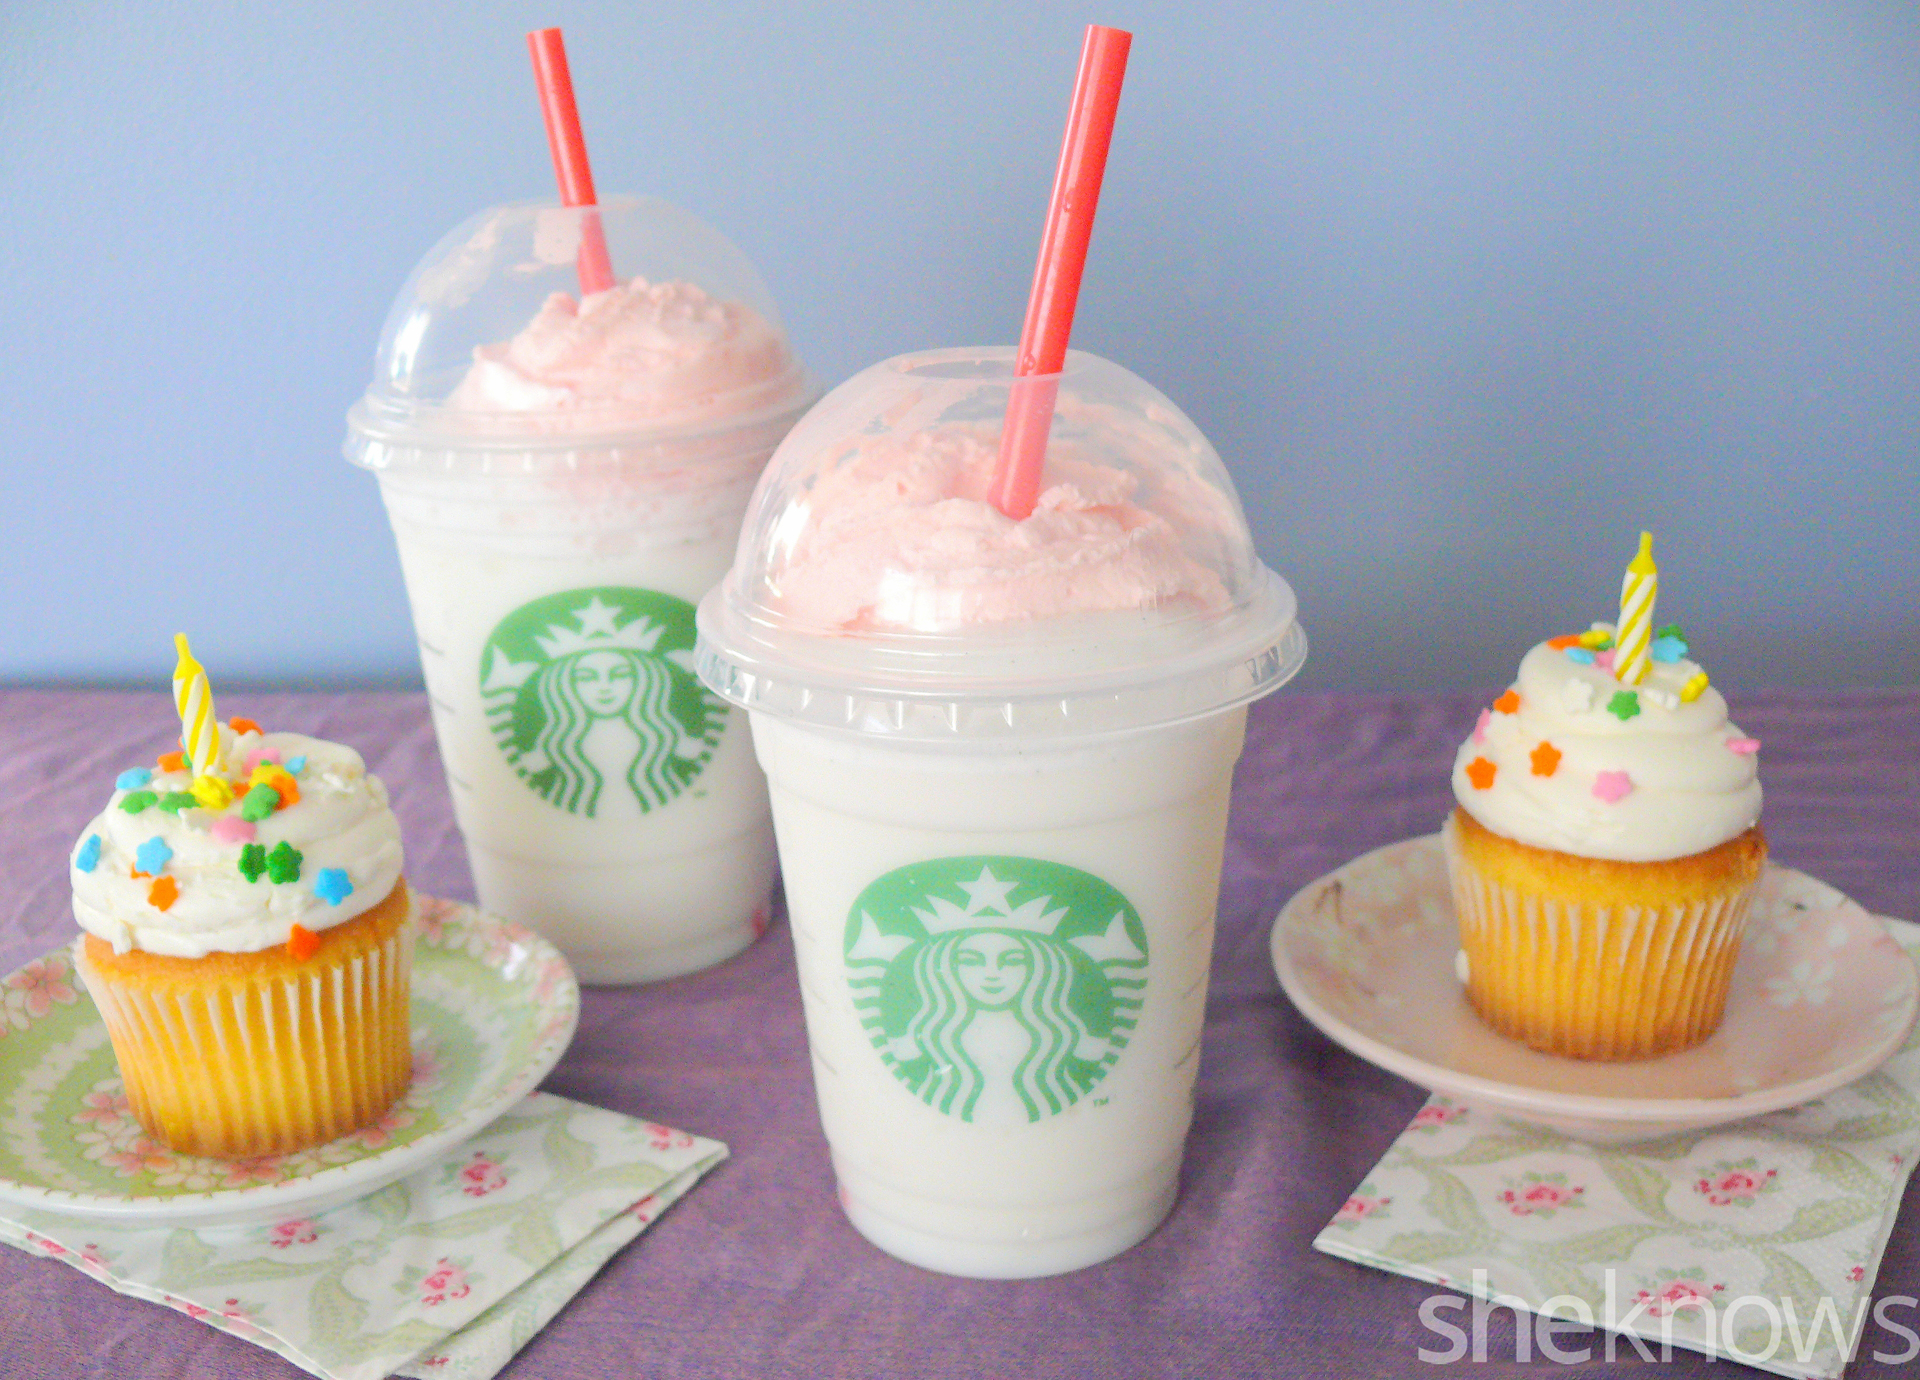 Birthday Cake Starbucks Starbucks Birthday Cake Frappuccino We Tried It Is It Worth It